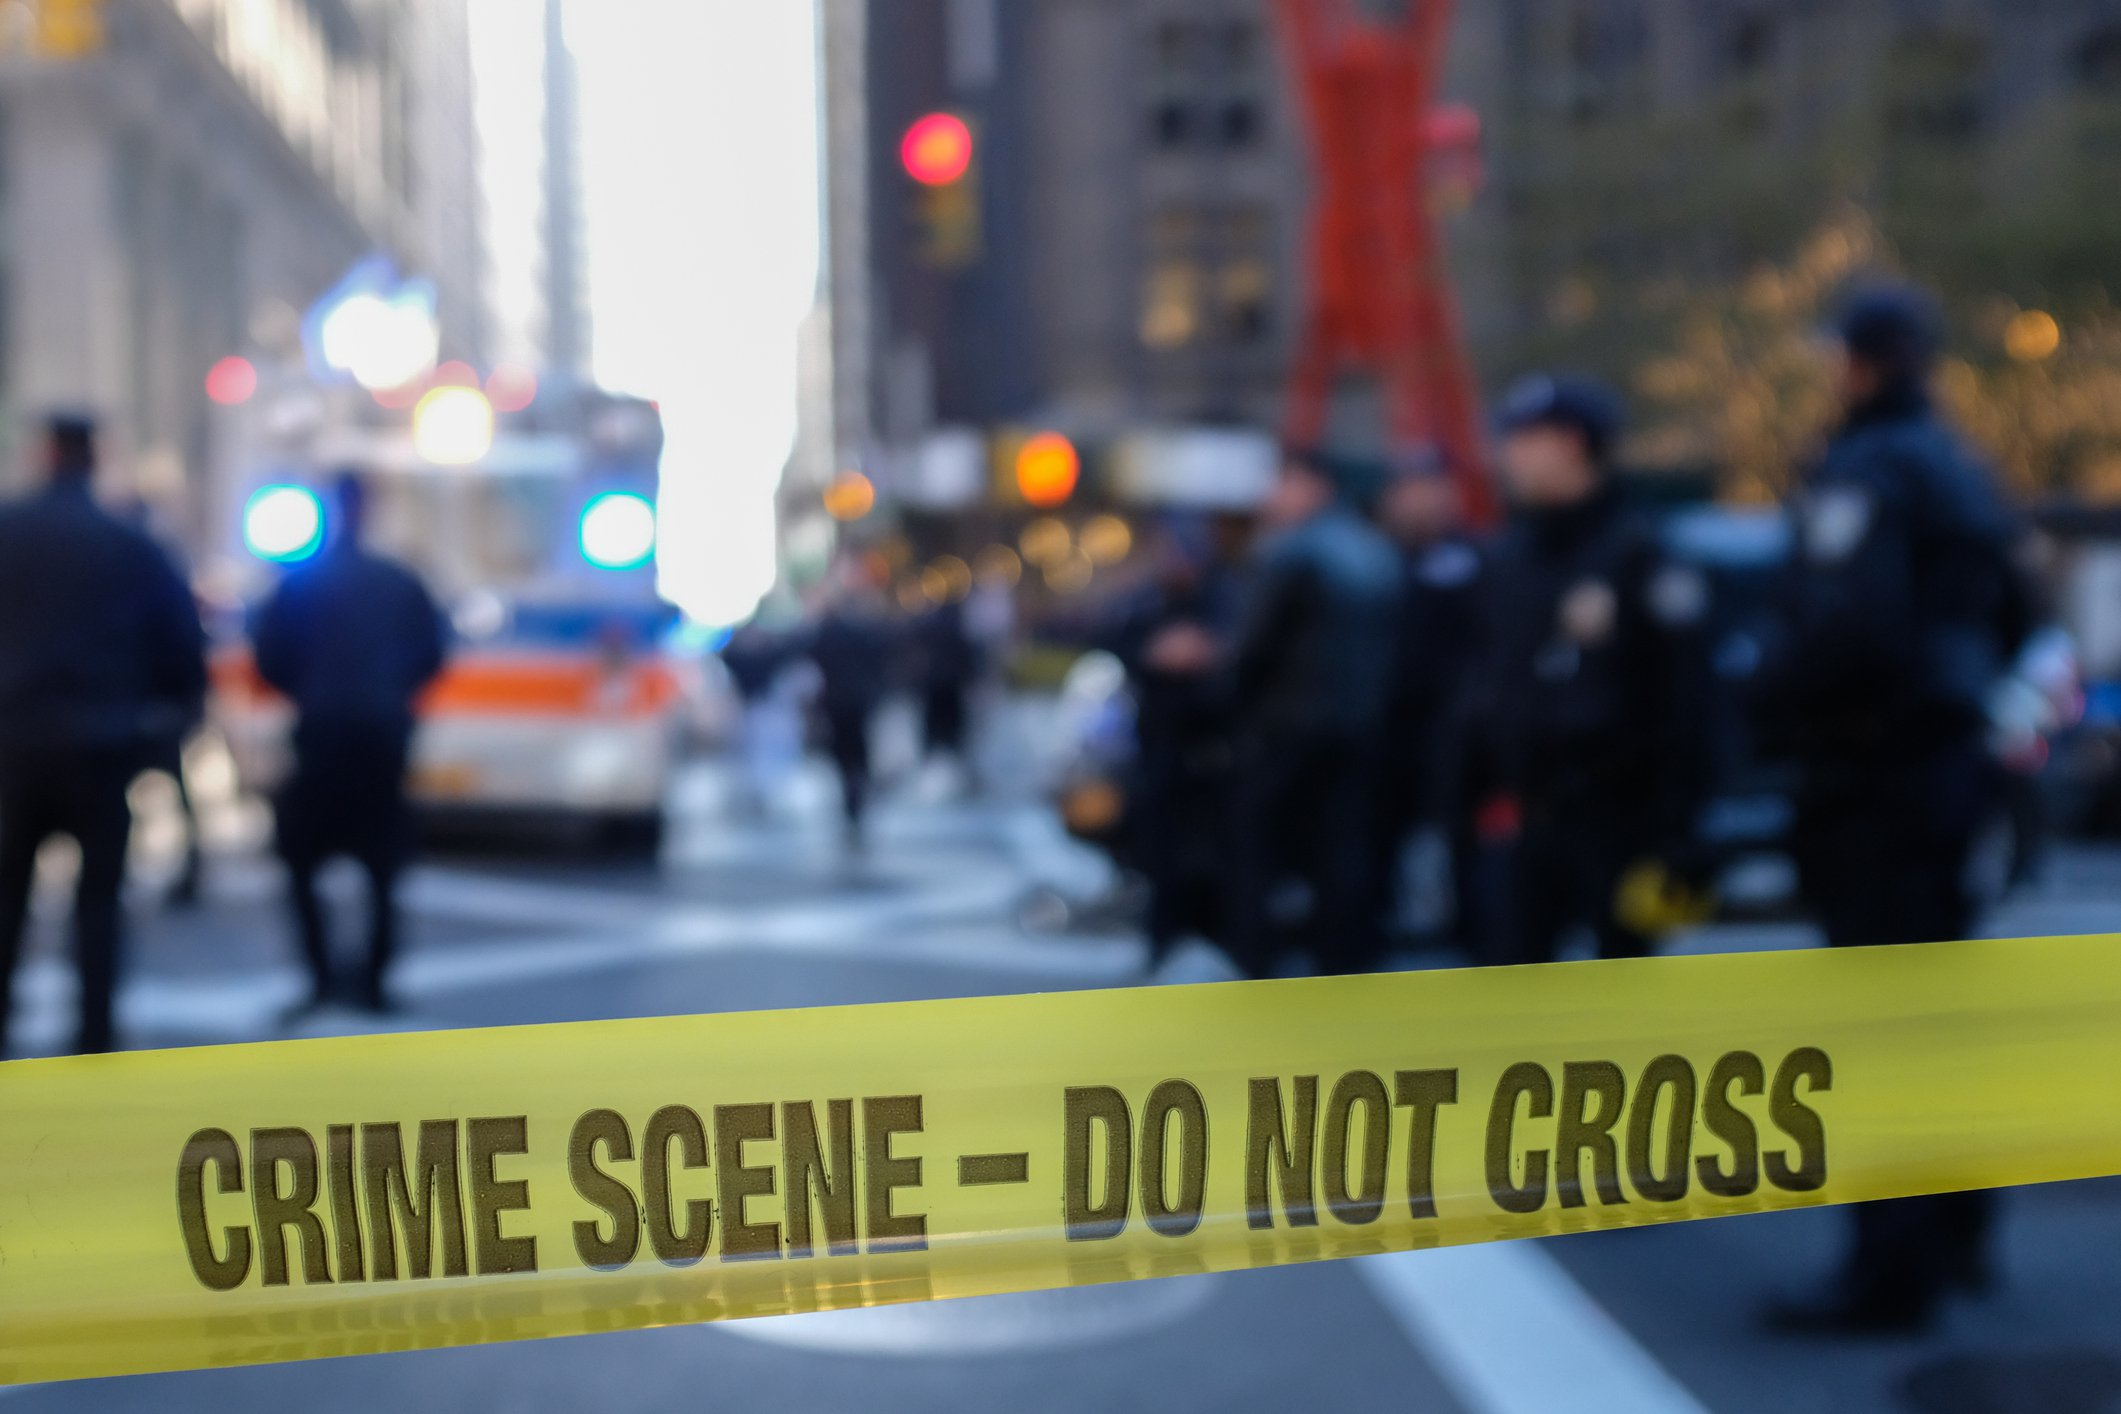 Have You Experienced a Petty Crime In New York? Tell Us Your Story